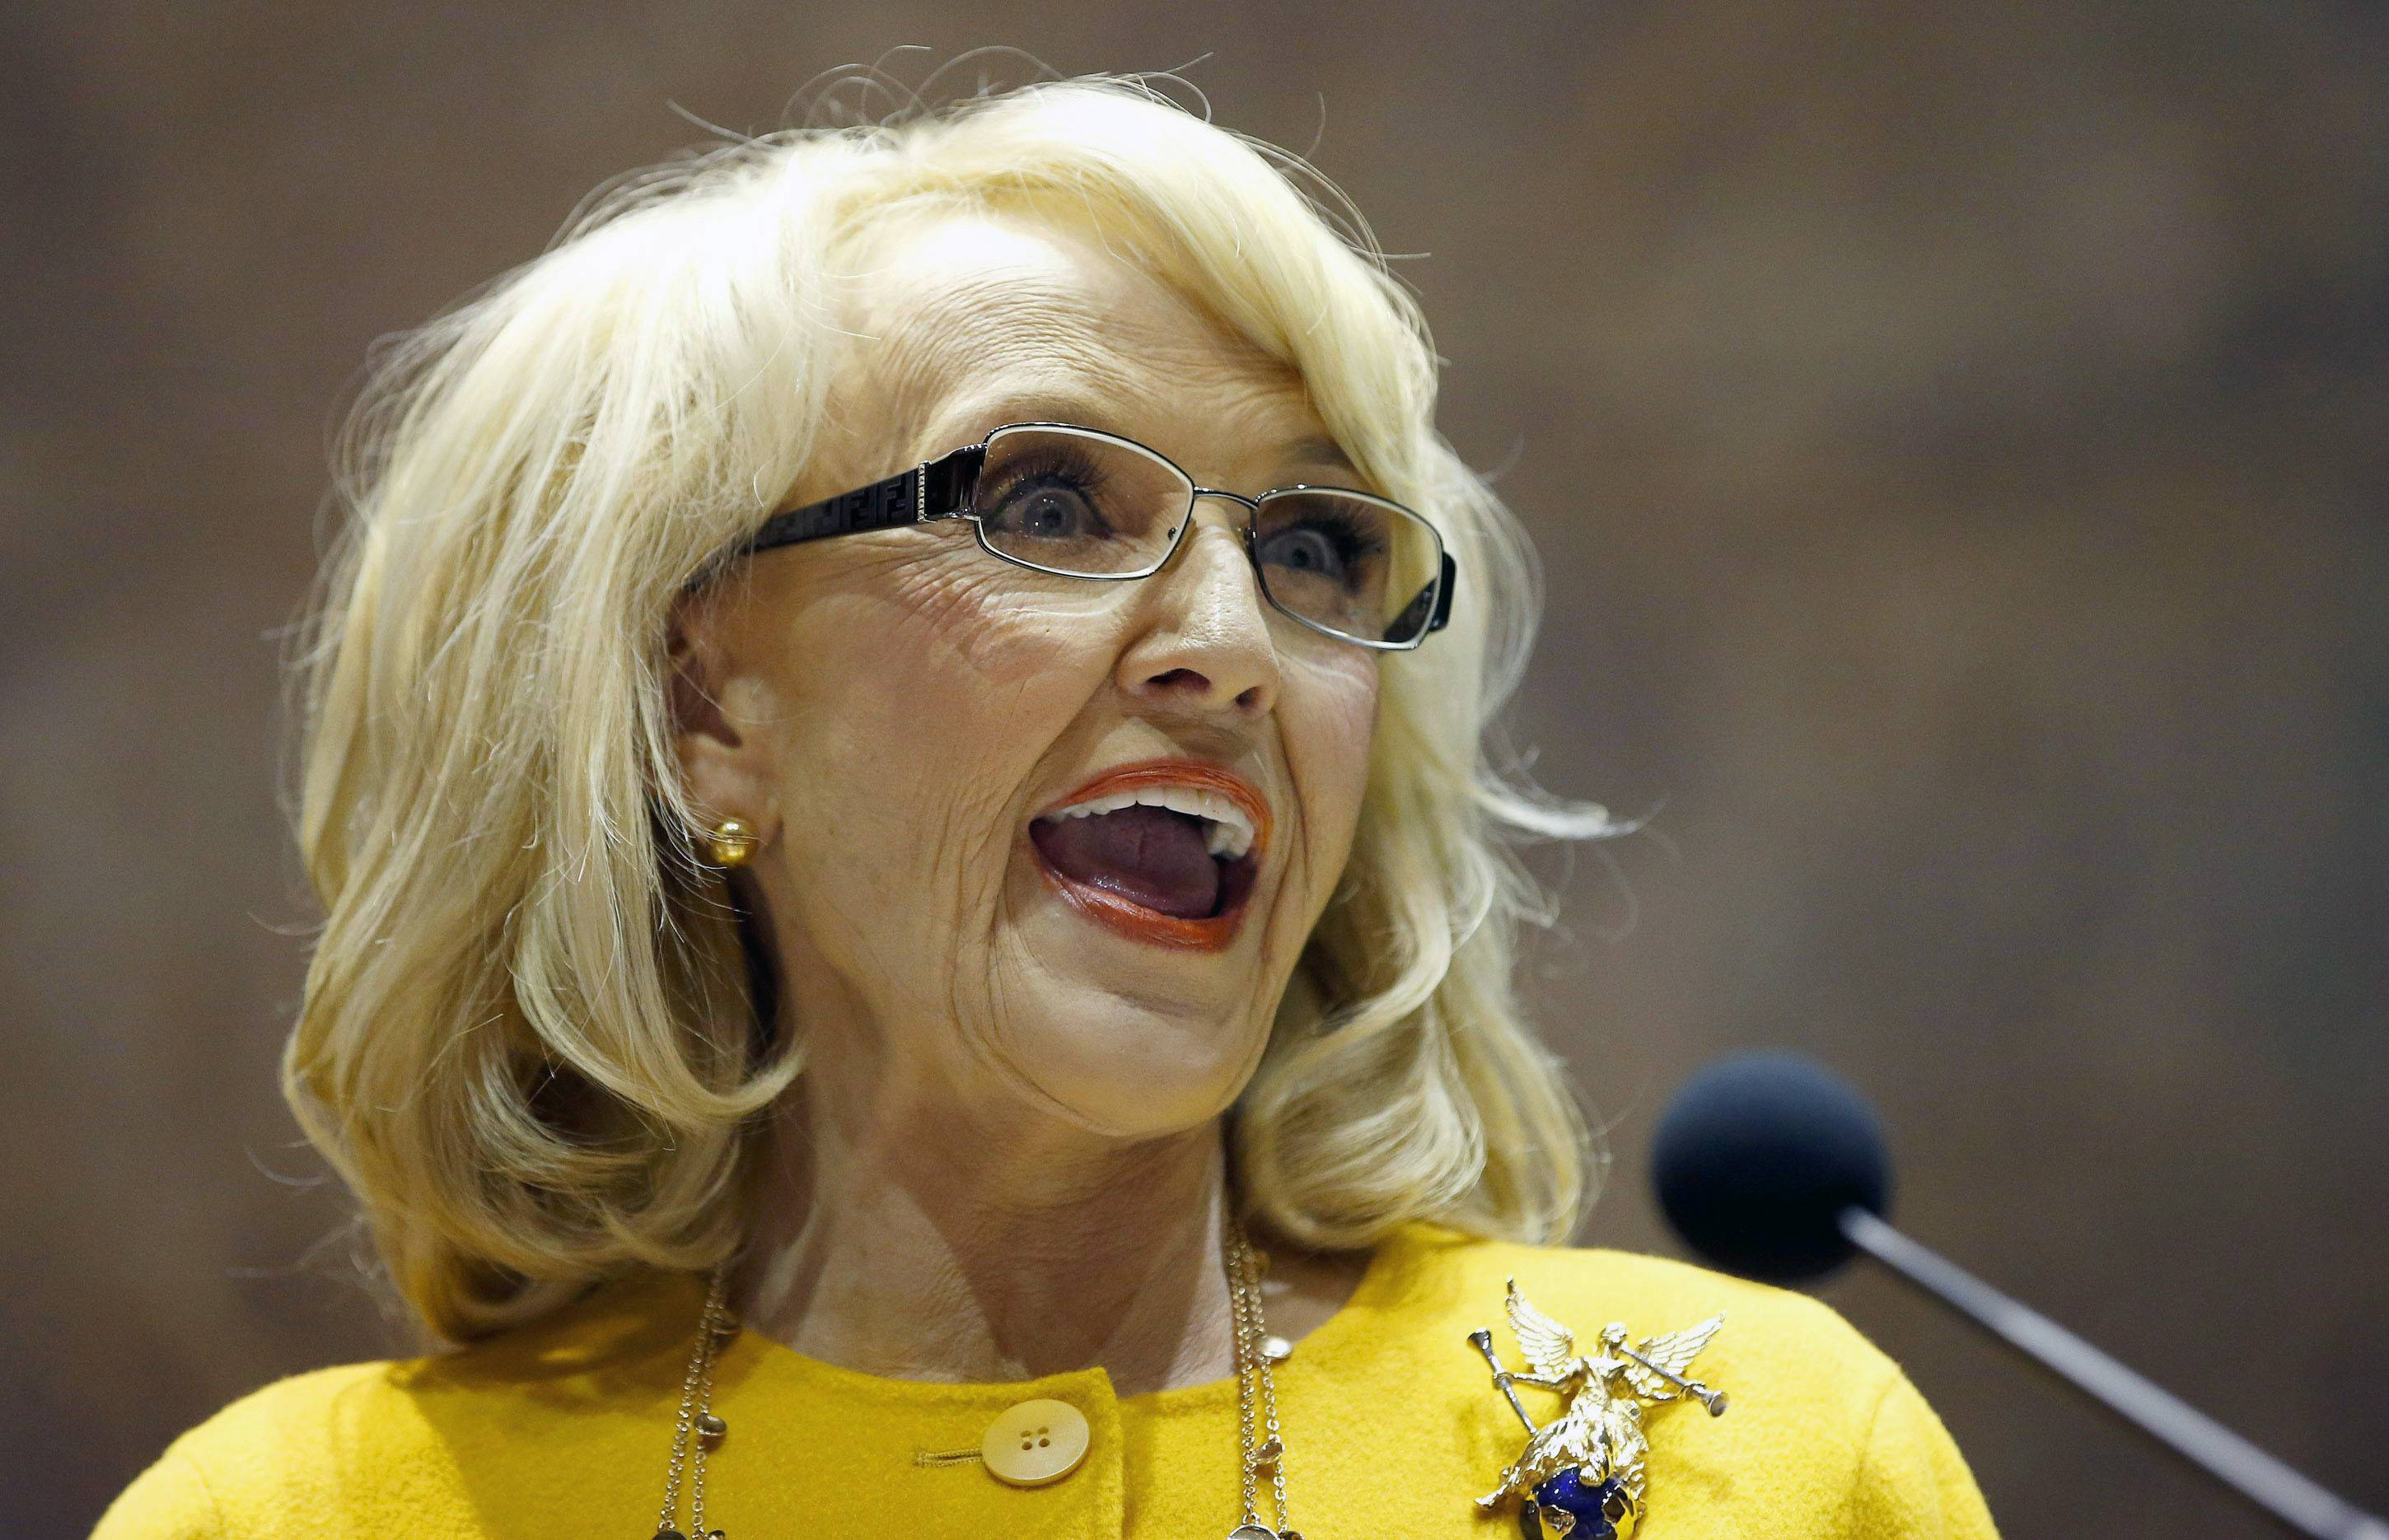 Arizona Gov. Jan Brewer bowed to intensifying pressure from CEOs, politicians in Washington and state lawmakers in her own party and vetoed a bill that would have allowed business owners with strongly held religious beliefs to deny service to gays and lesbians.